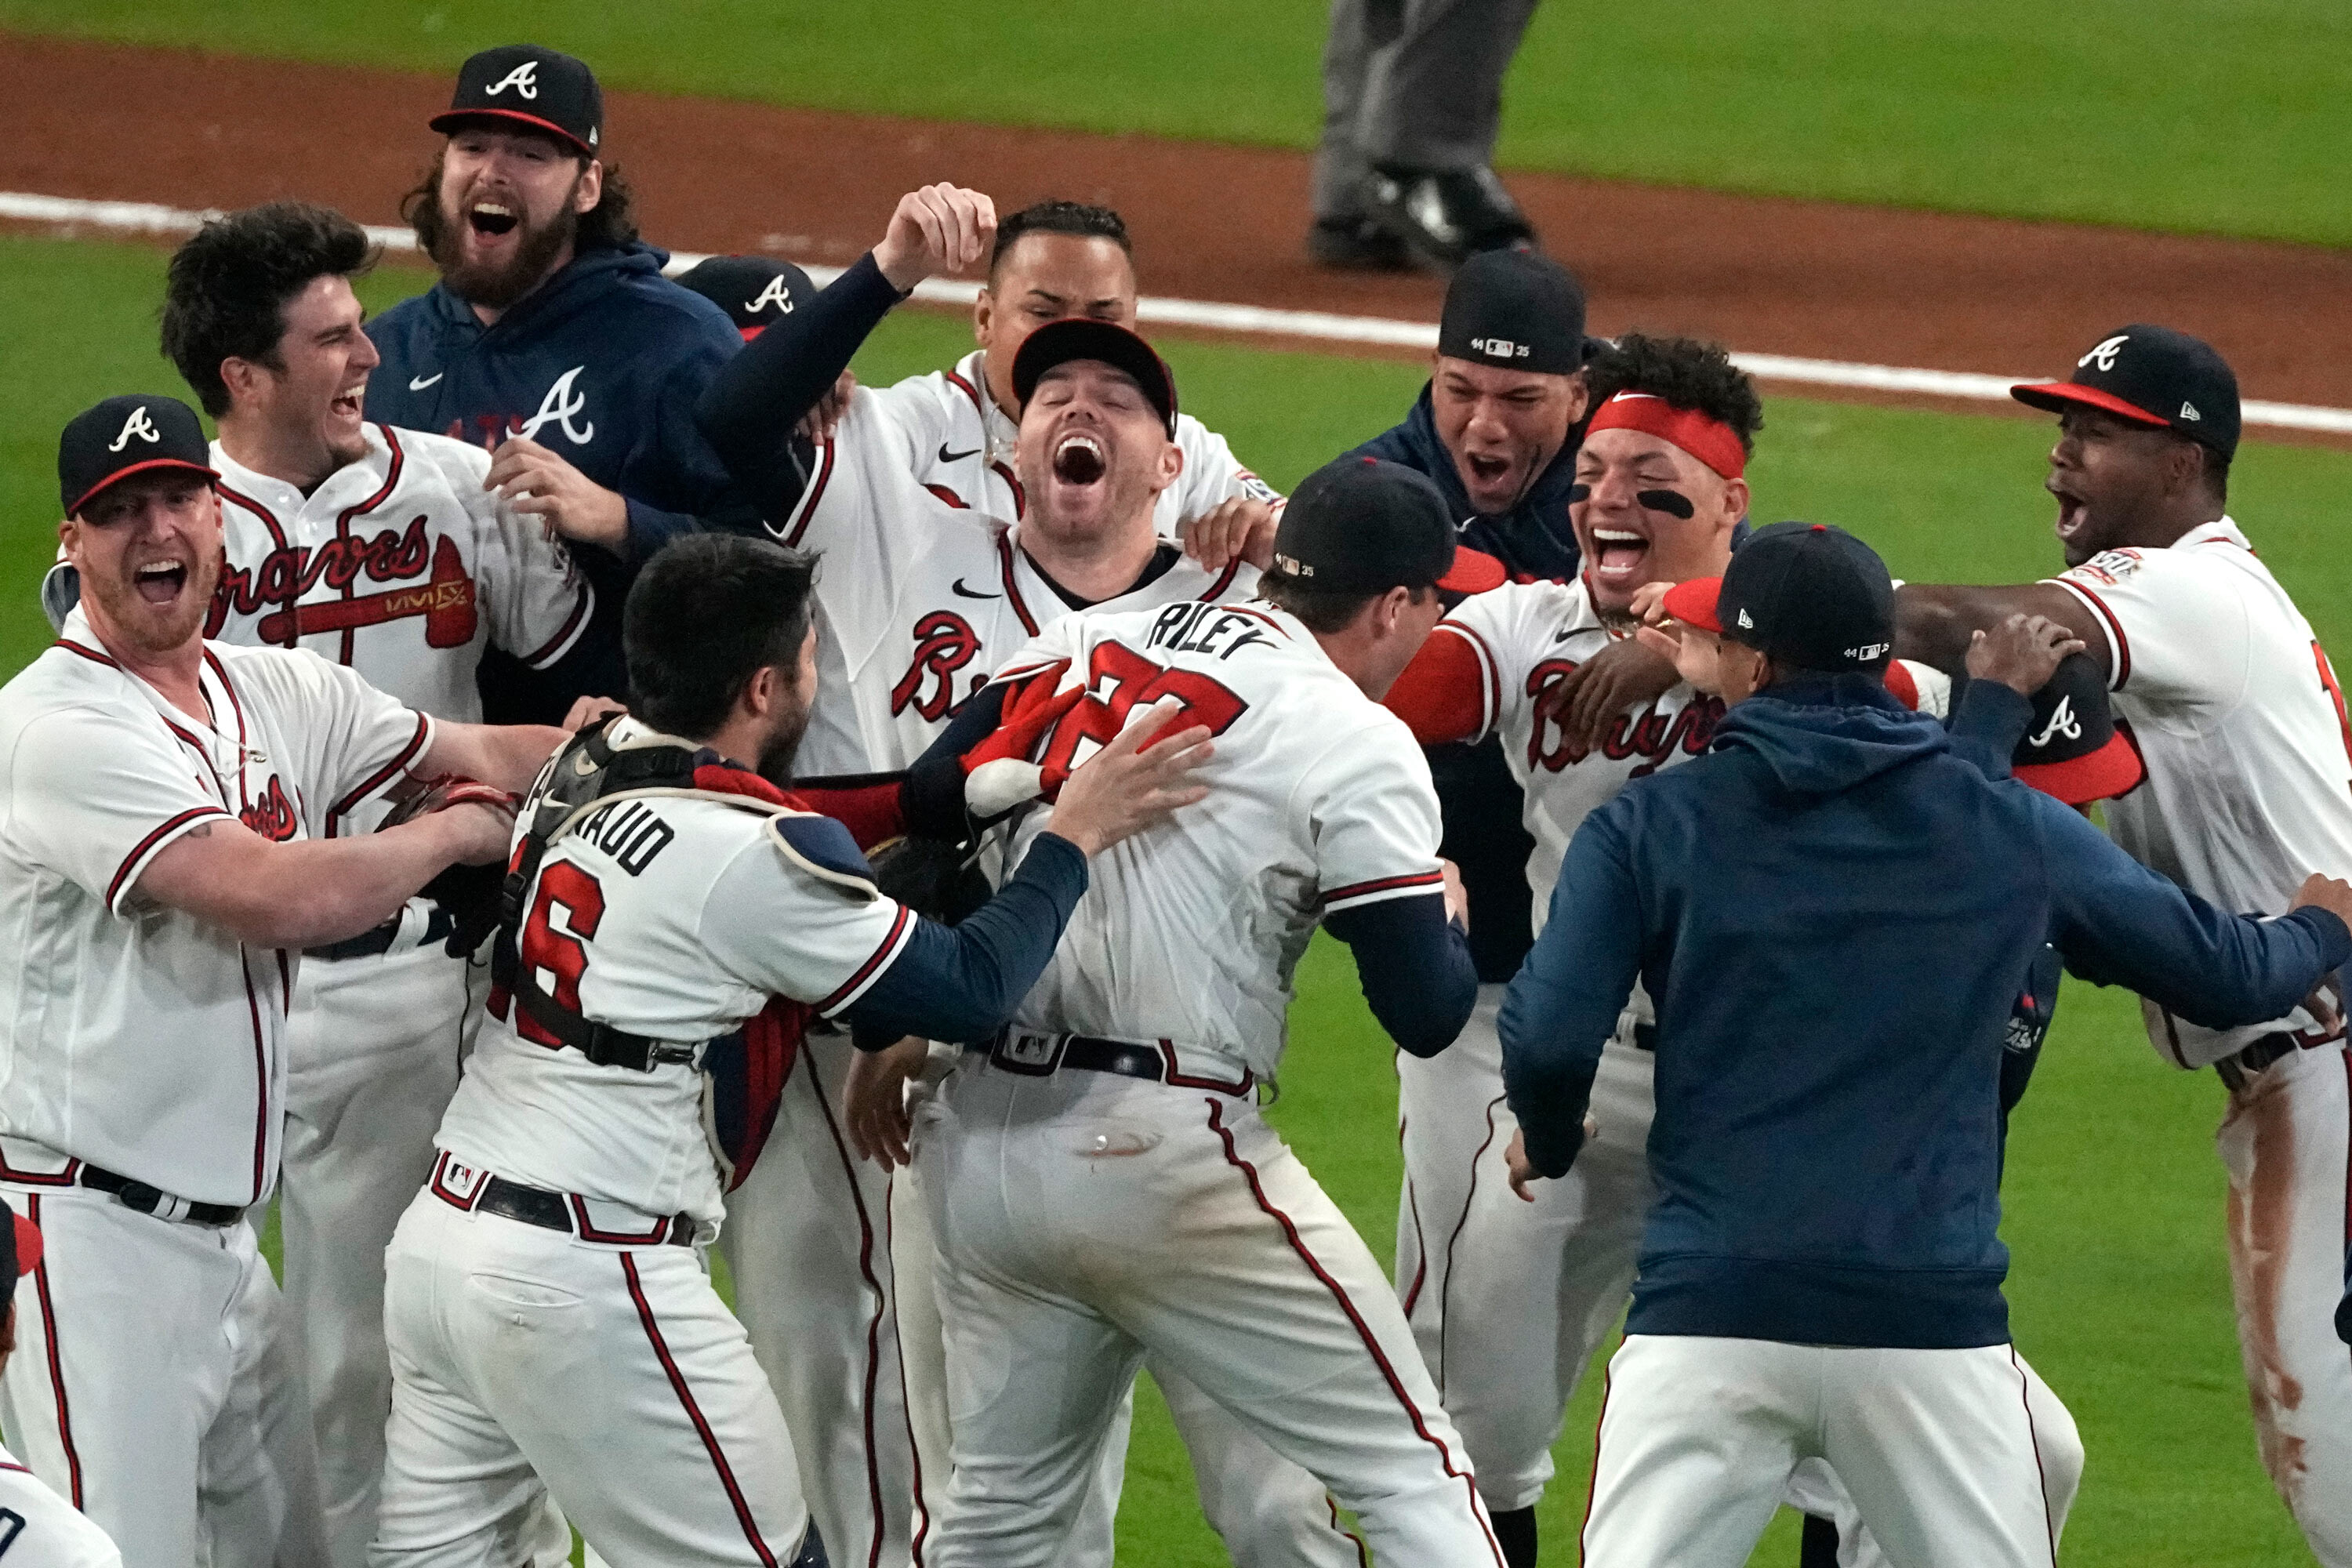 Atlanta Braves advance to the World Series for the first time in 22 years, will face Houston Astros